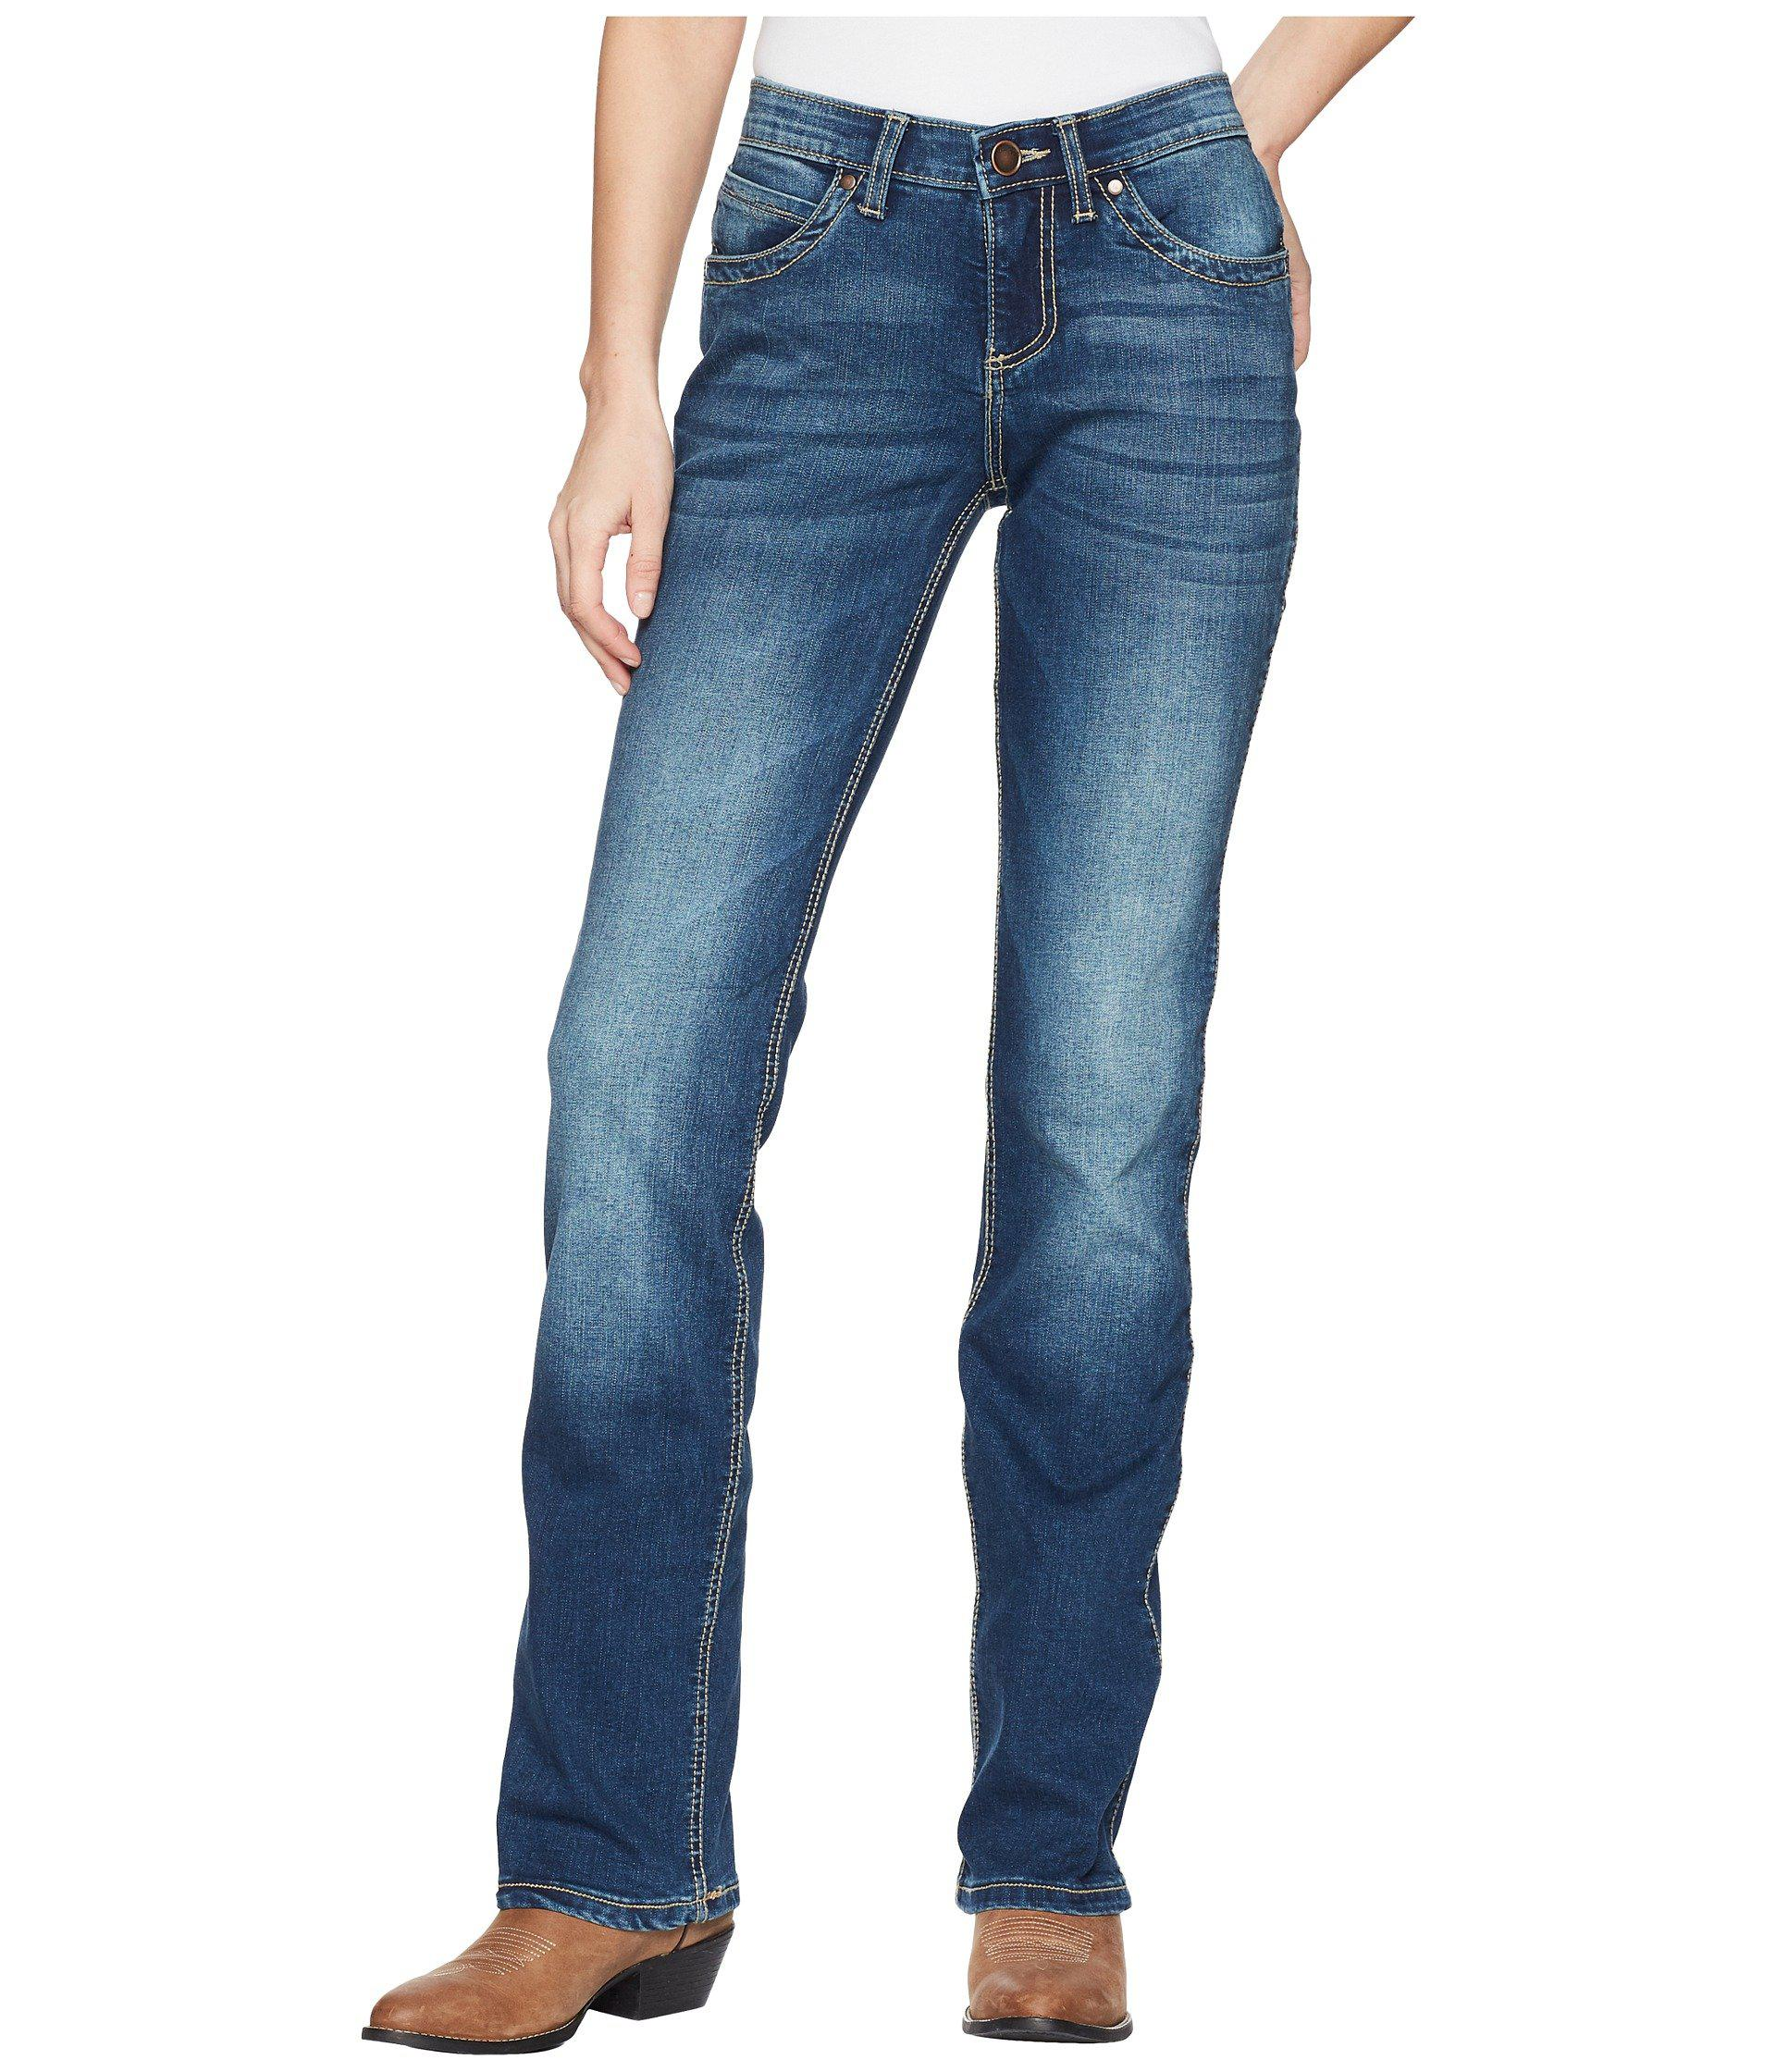 Lyst Wrangler Q Baby Ultimate Riding Jeans in Blue